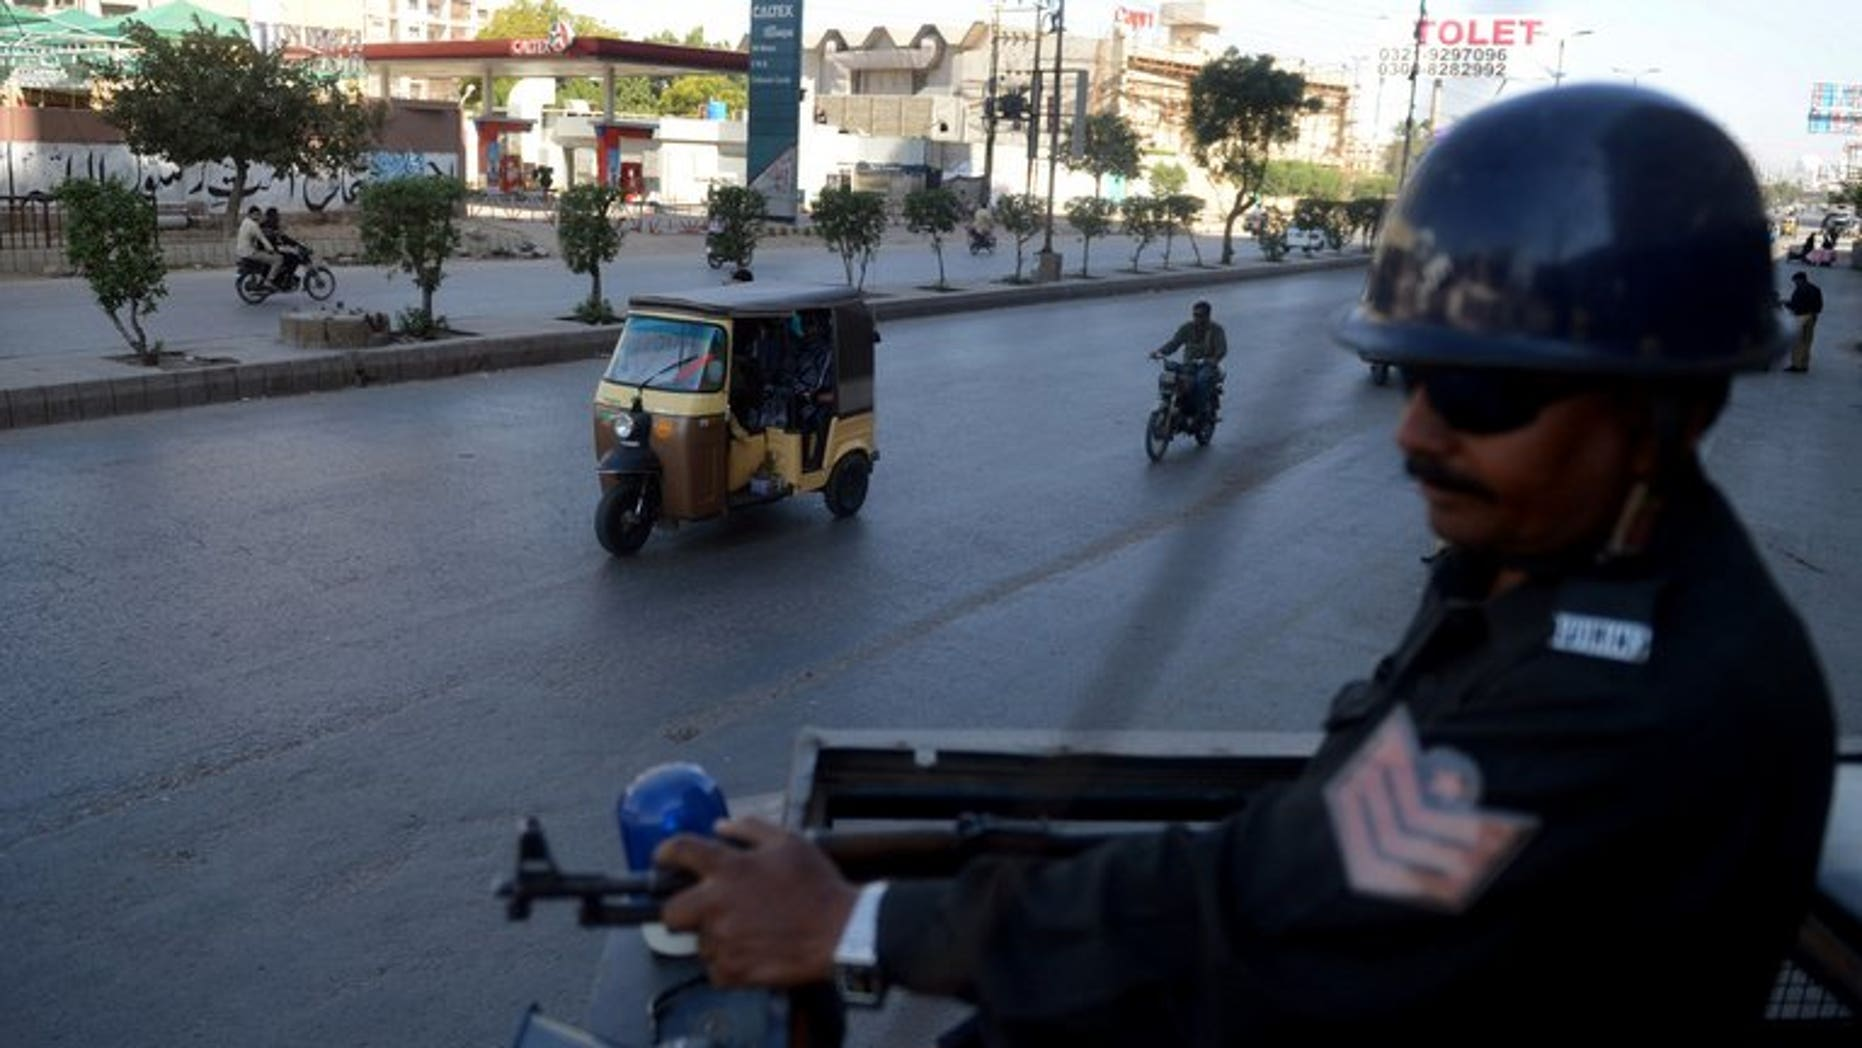 A Pakistani policeman stands guard on a police van in Karachi on February 8, 2013. A hand grenade attack targeting the office of a political party late Sunday killed at least two people and wounded six others in Pakistan's port city of Karachi, police said.